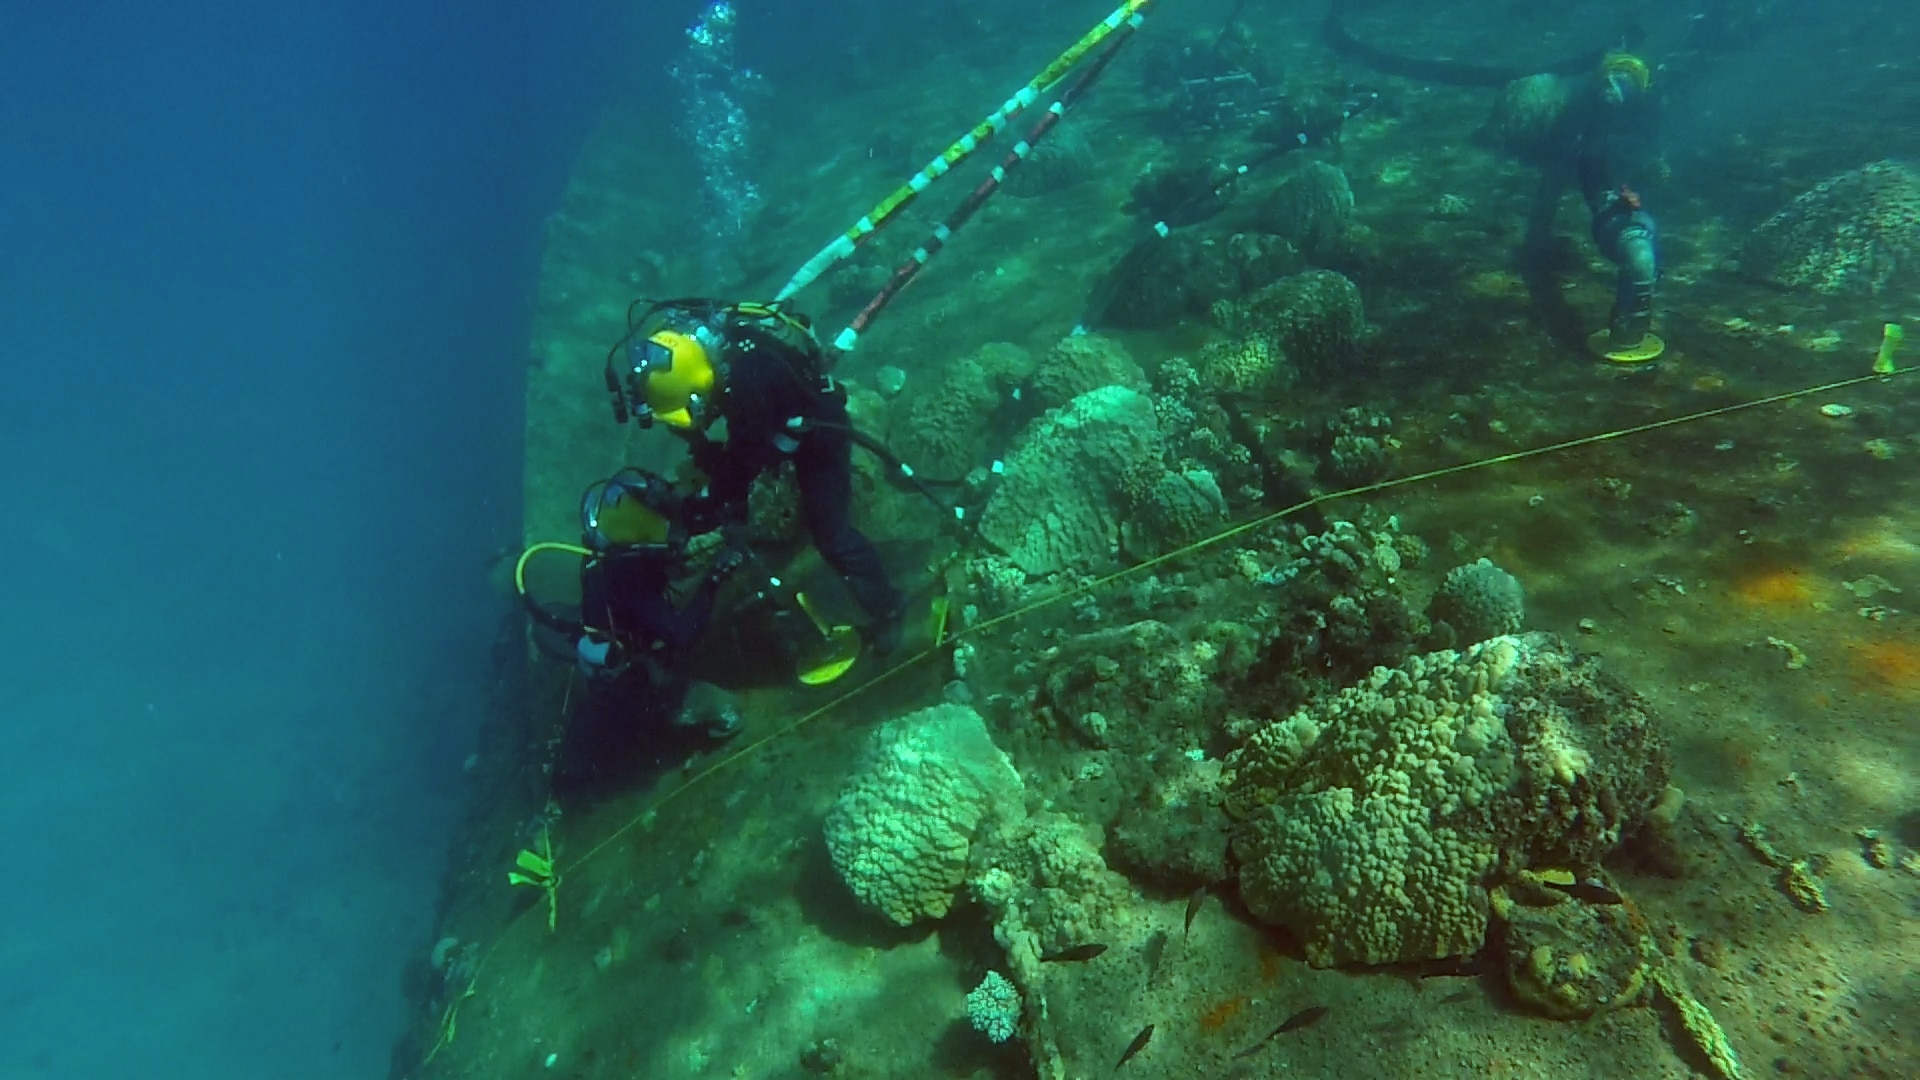 .S. Navy Divers Recover Oil from Wrecked WWII Prinz Eugen